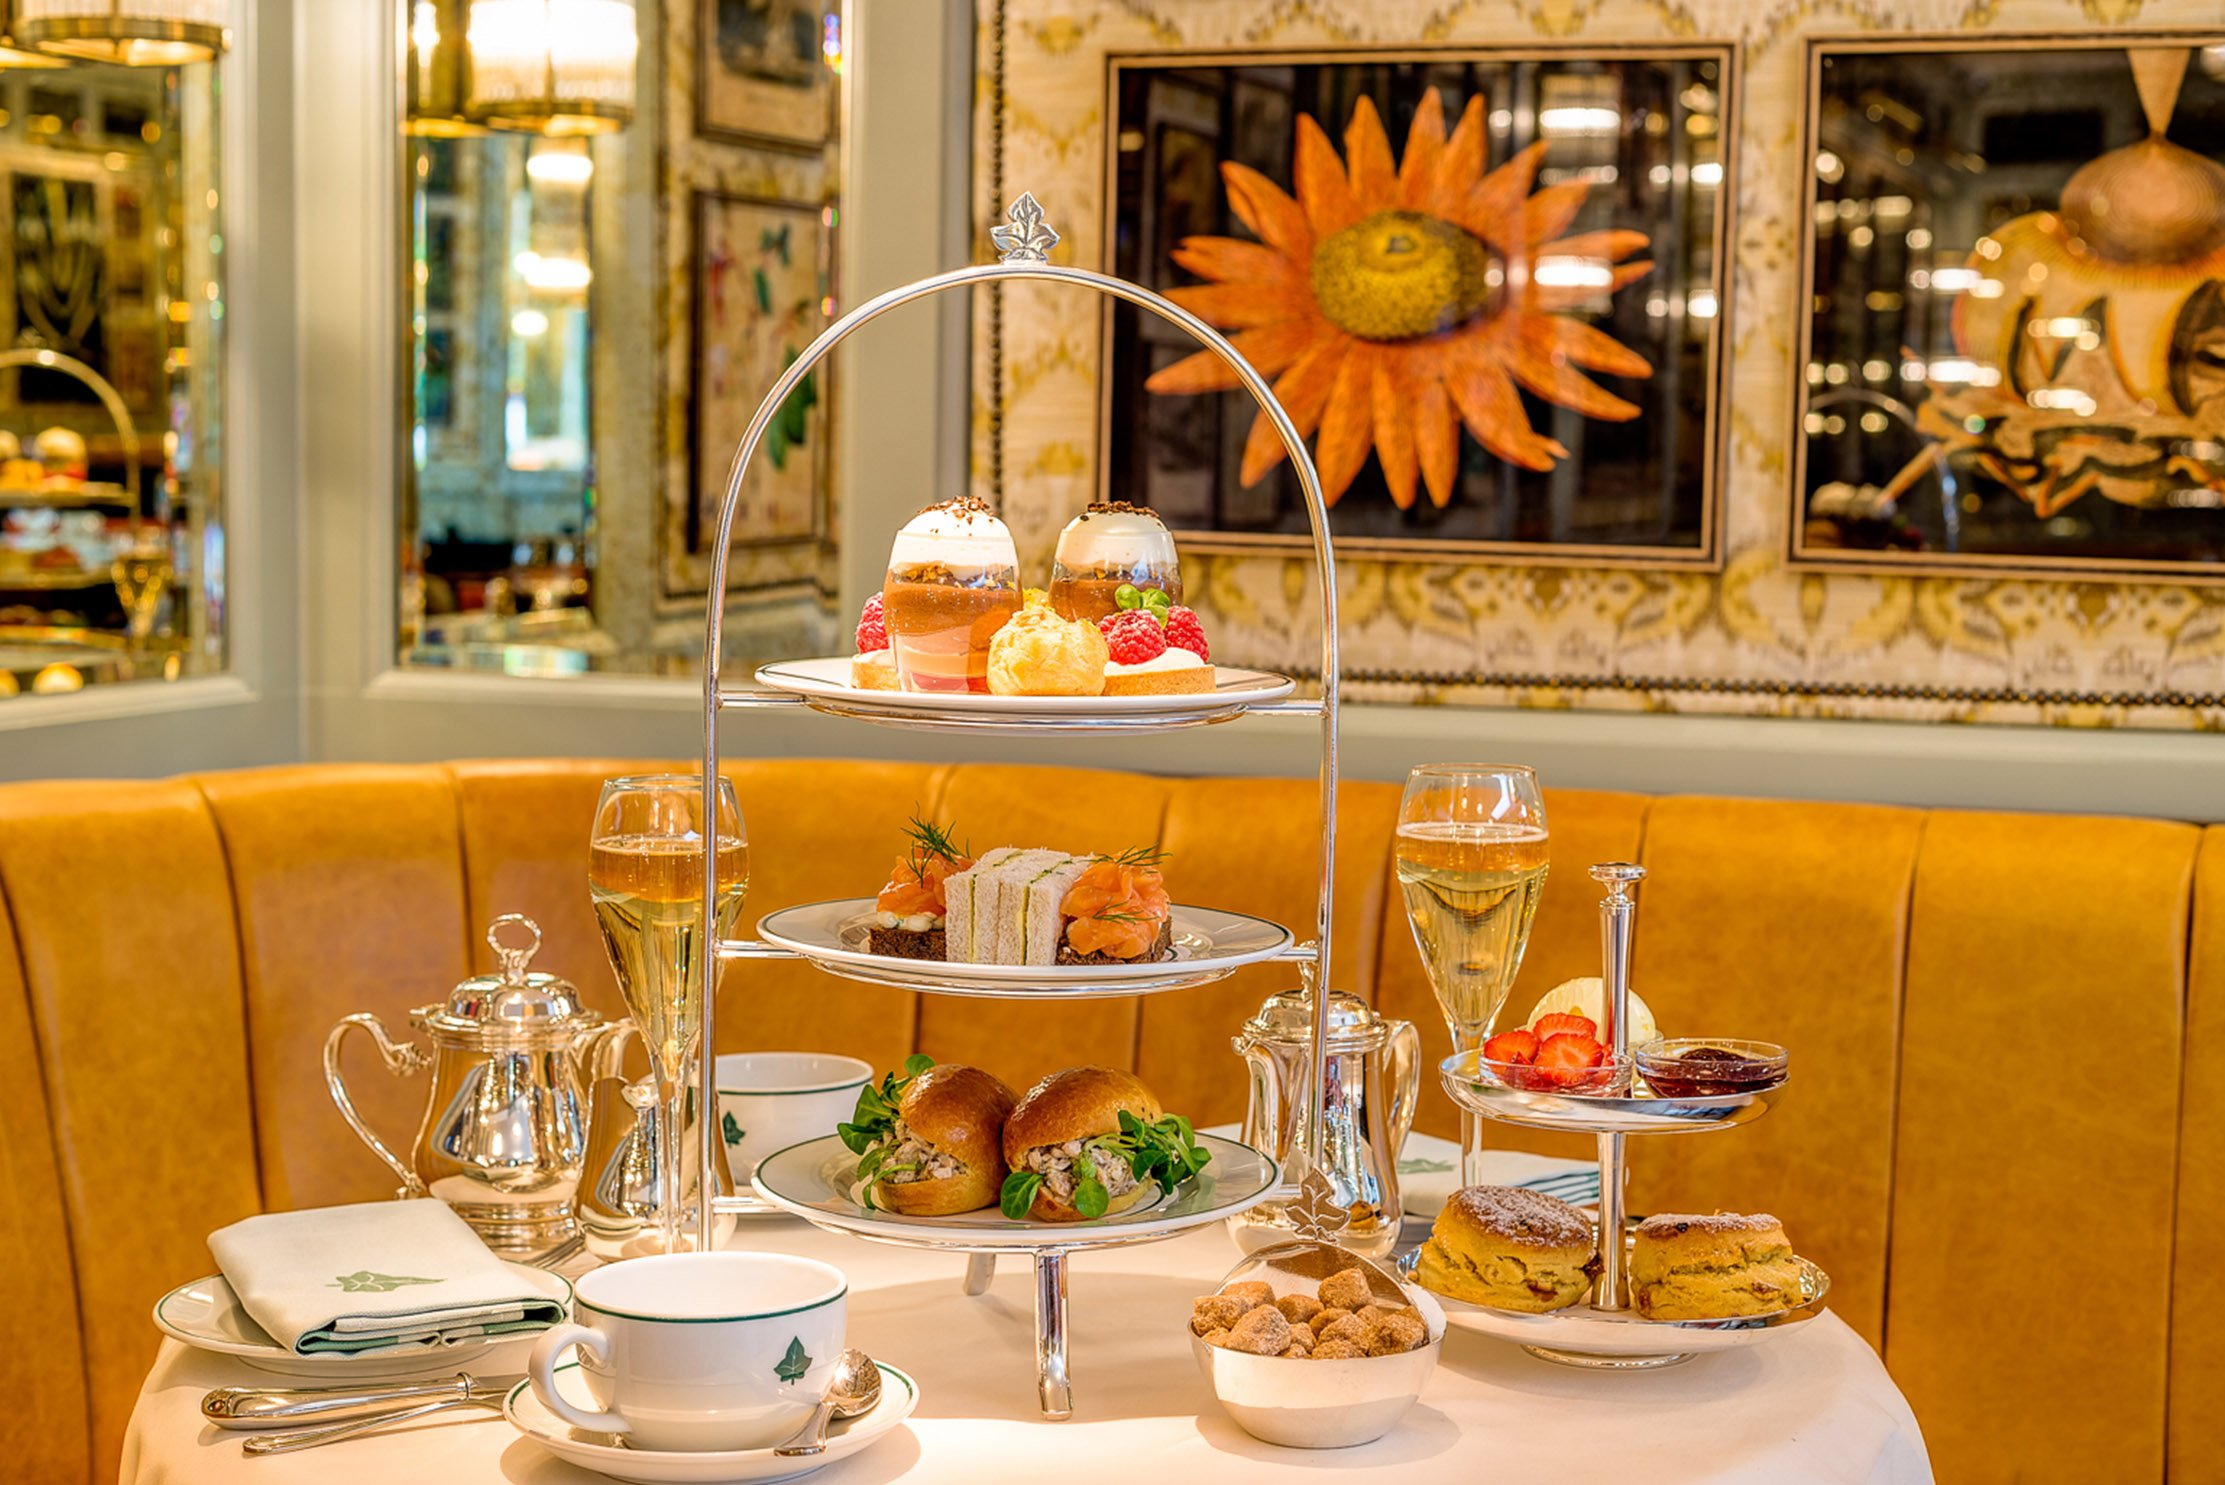 The Ivy in the Lanes and BN1 Magazine have teamed up to offer one of our lucky readers champagne afternoon tea for two